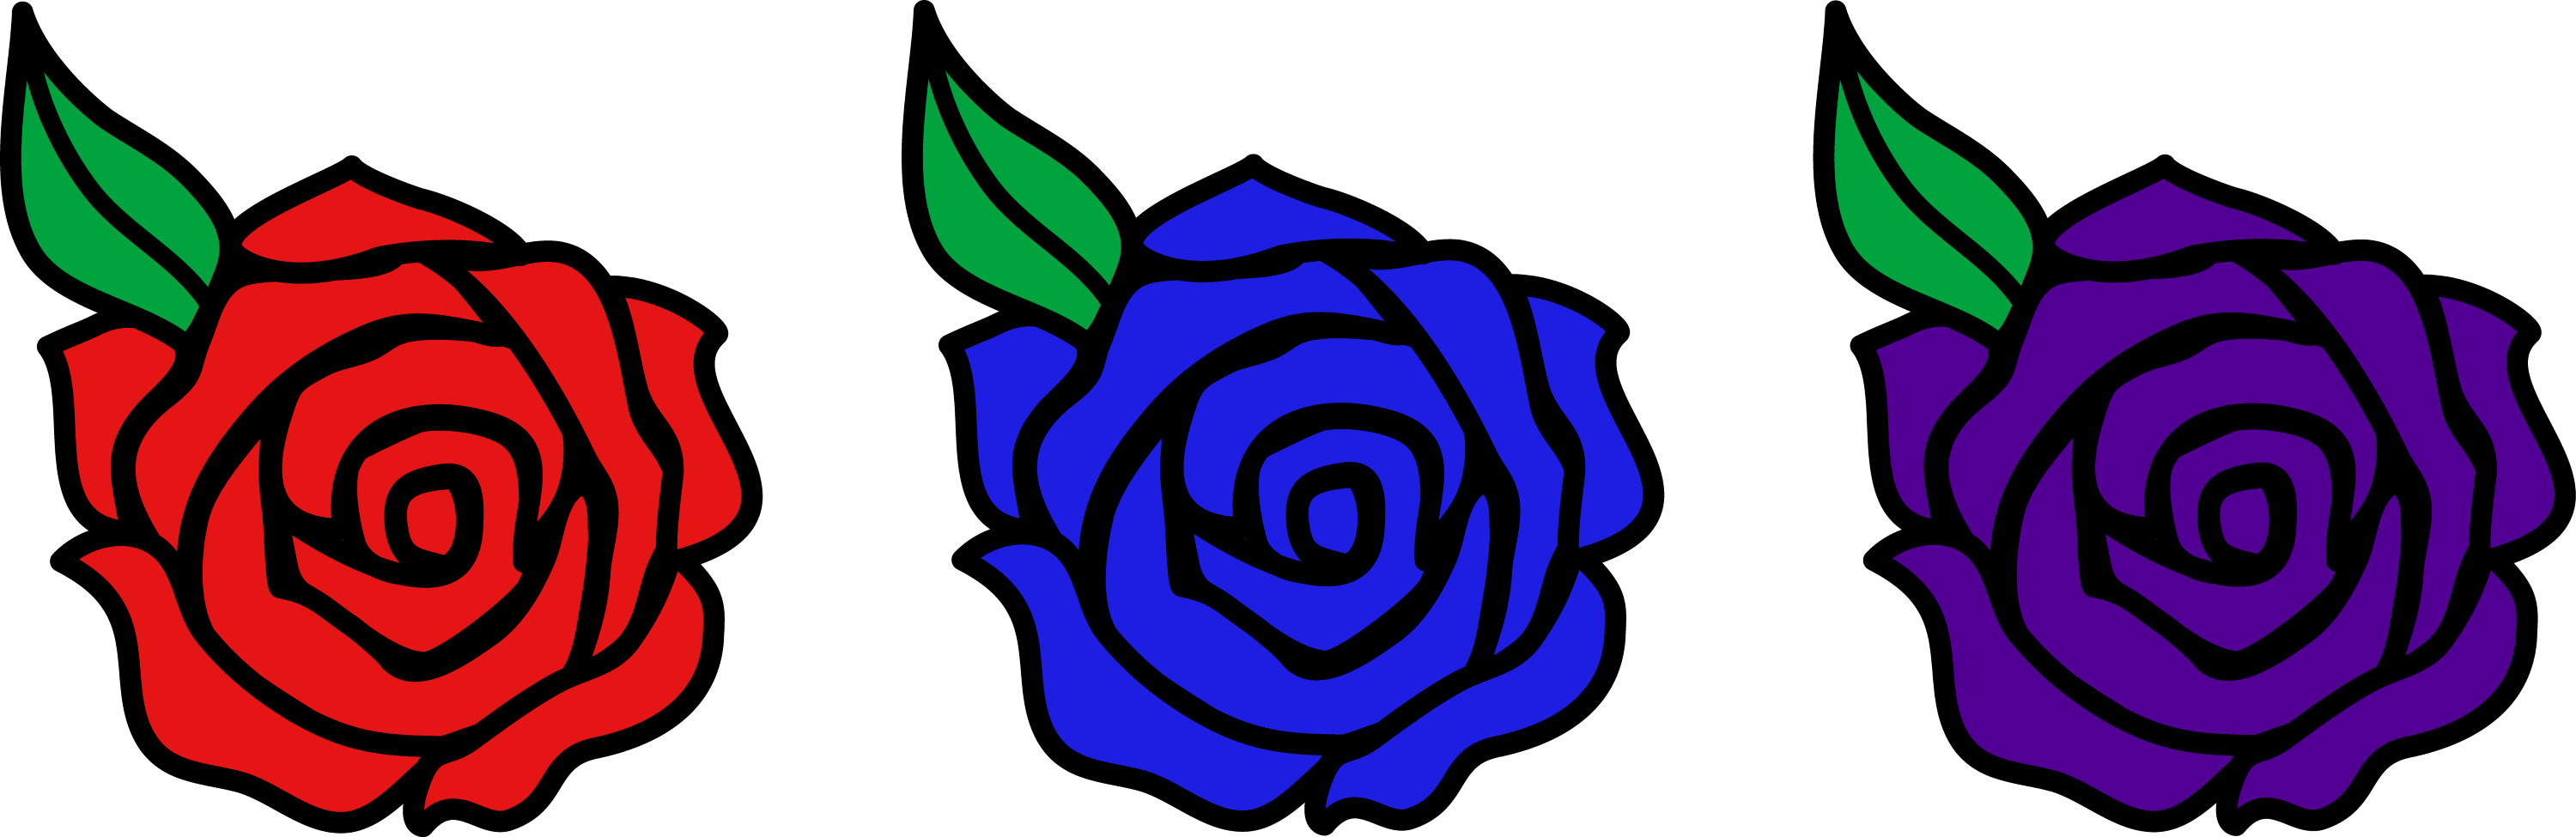 Cartoon Rose Flower